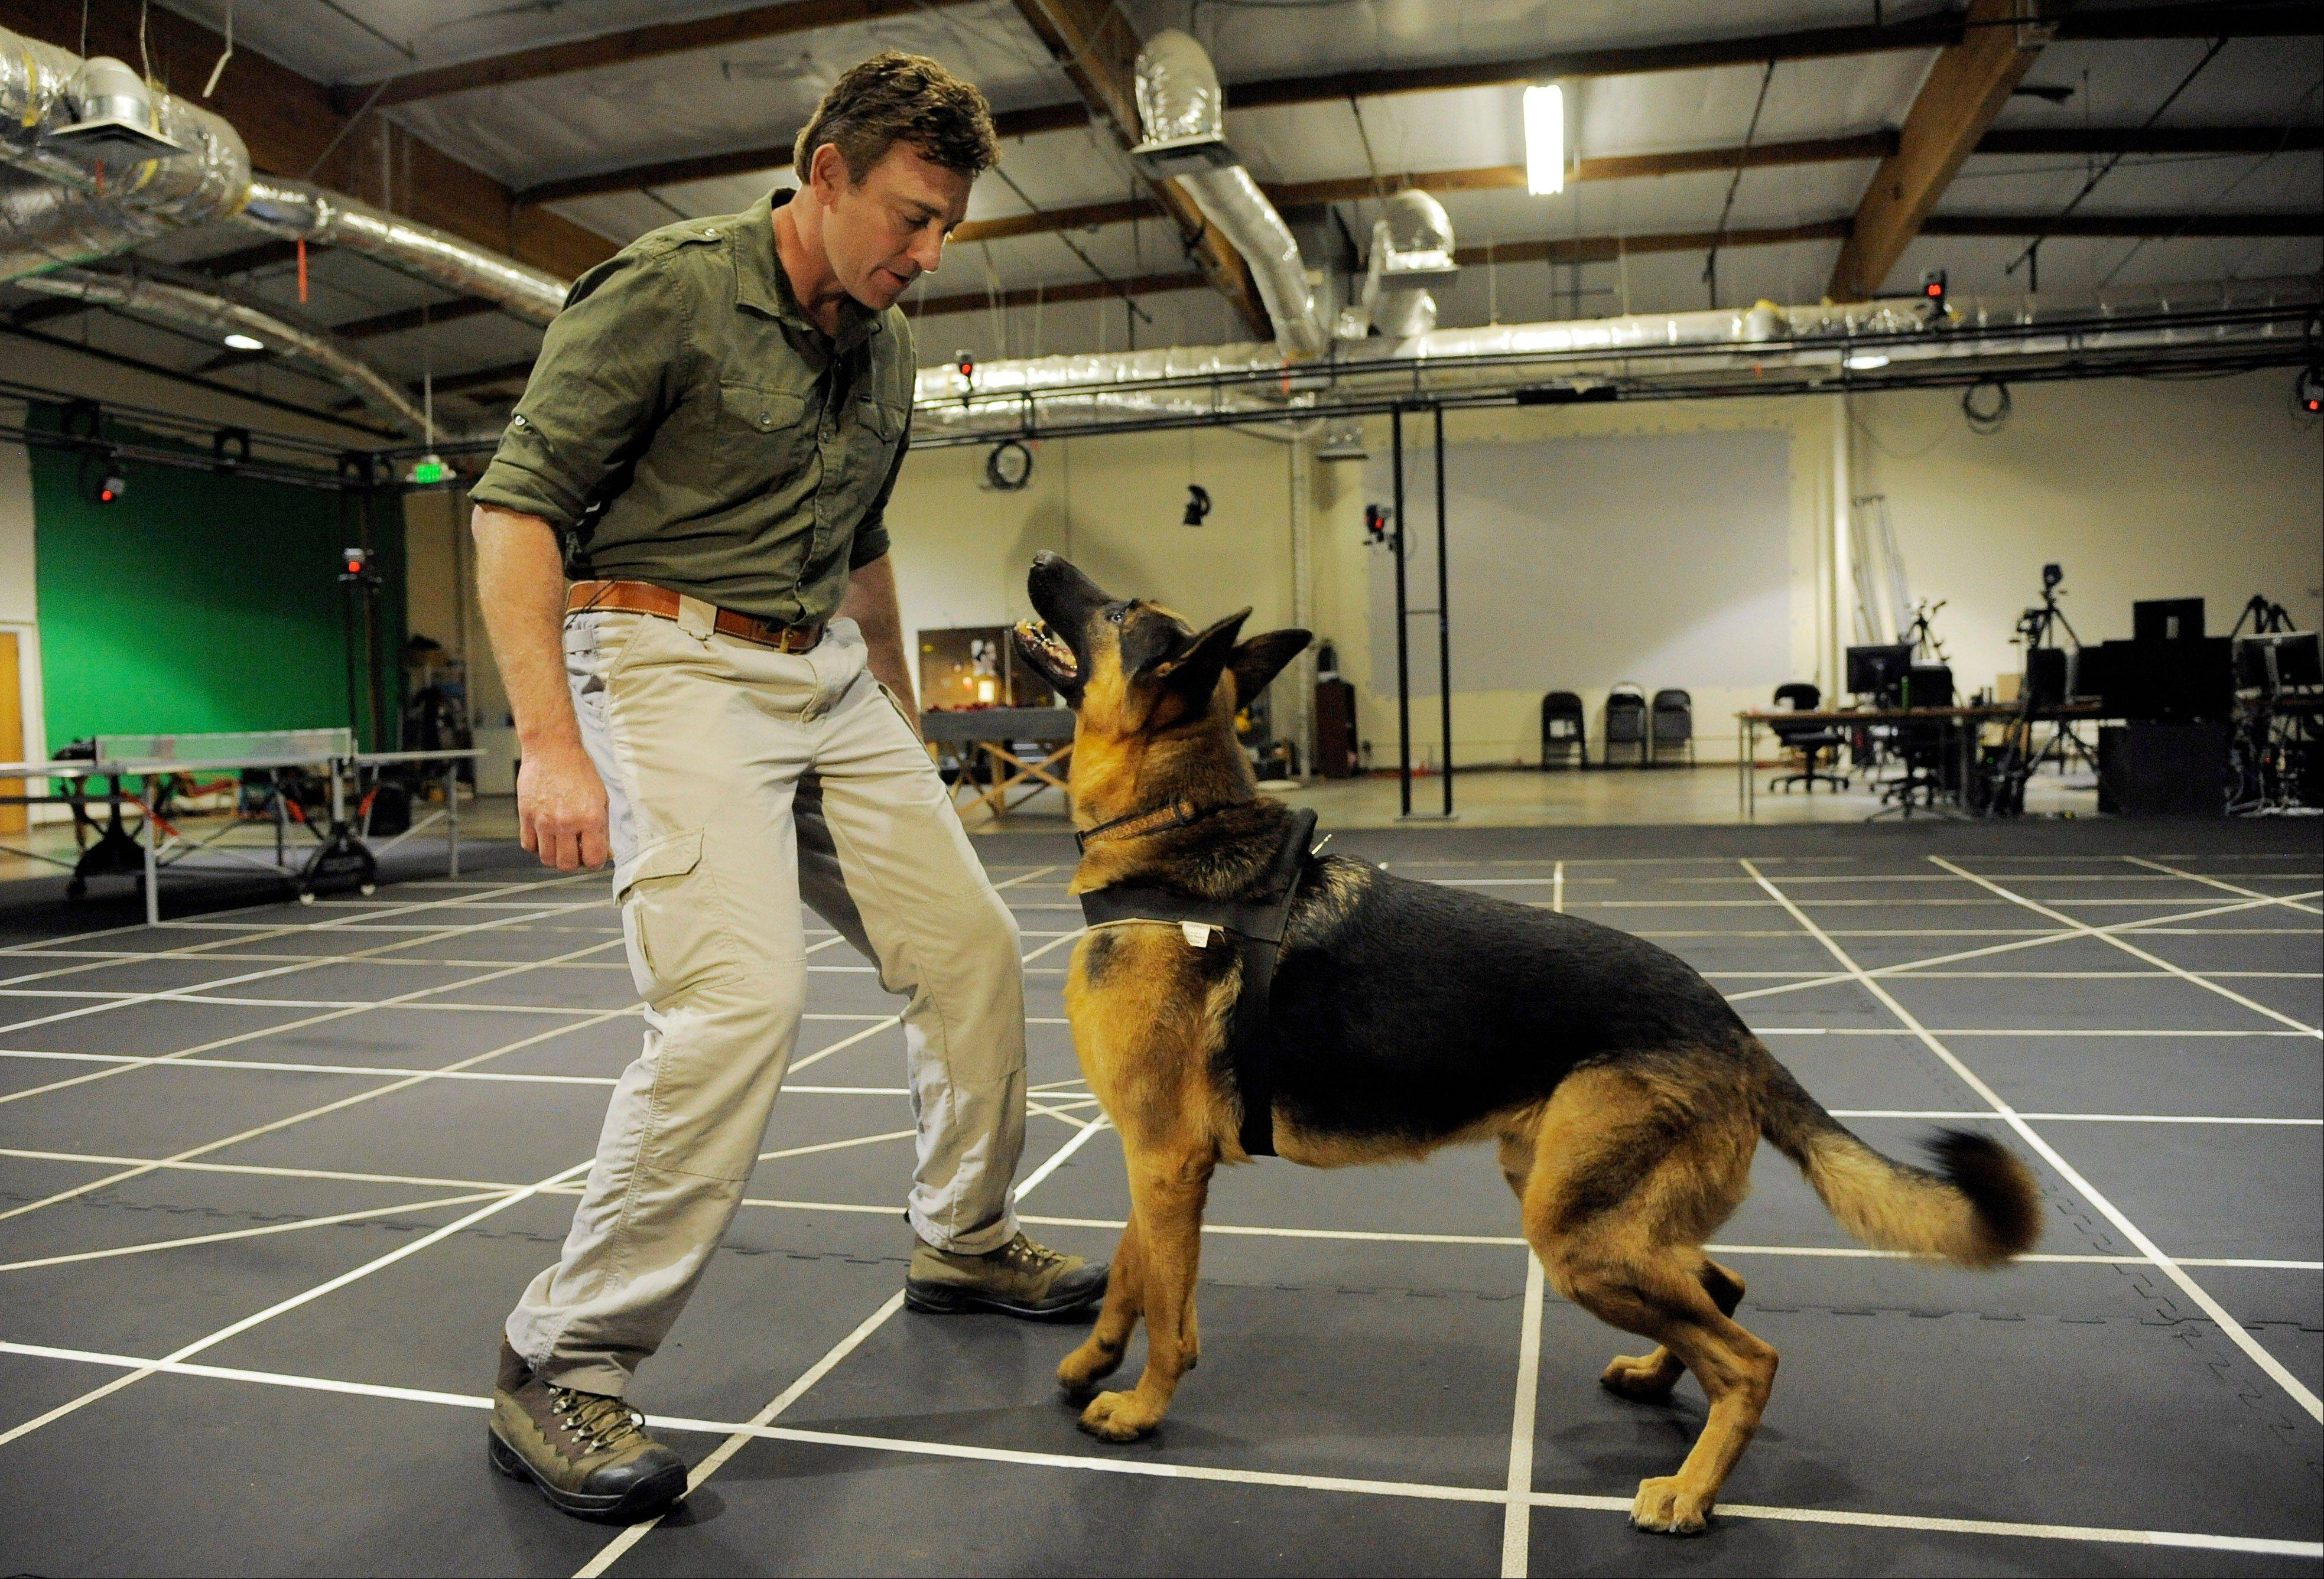 Trainer Chris Connell gives prompts to his dog Rugger on a motion-capture stage at Neversoft Motion Capture Studio, in Los Angeles. After footage released earlier this year revealed that �Call of Duty: Ghosts� would feature a four-legged soldier, the Internet uniformly wagged its tail in anticipation.